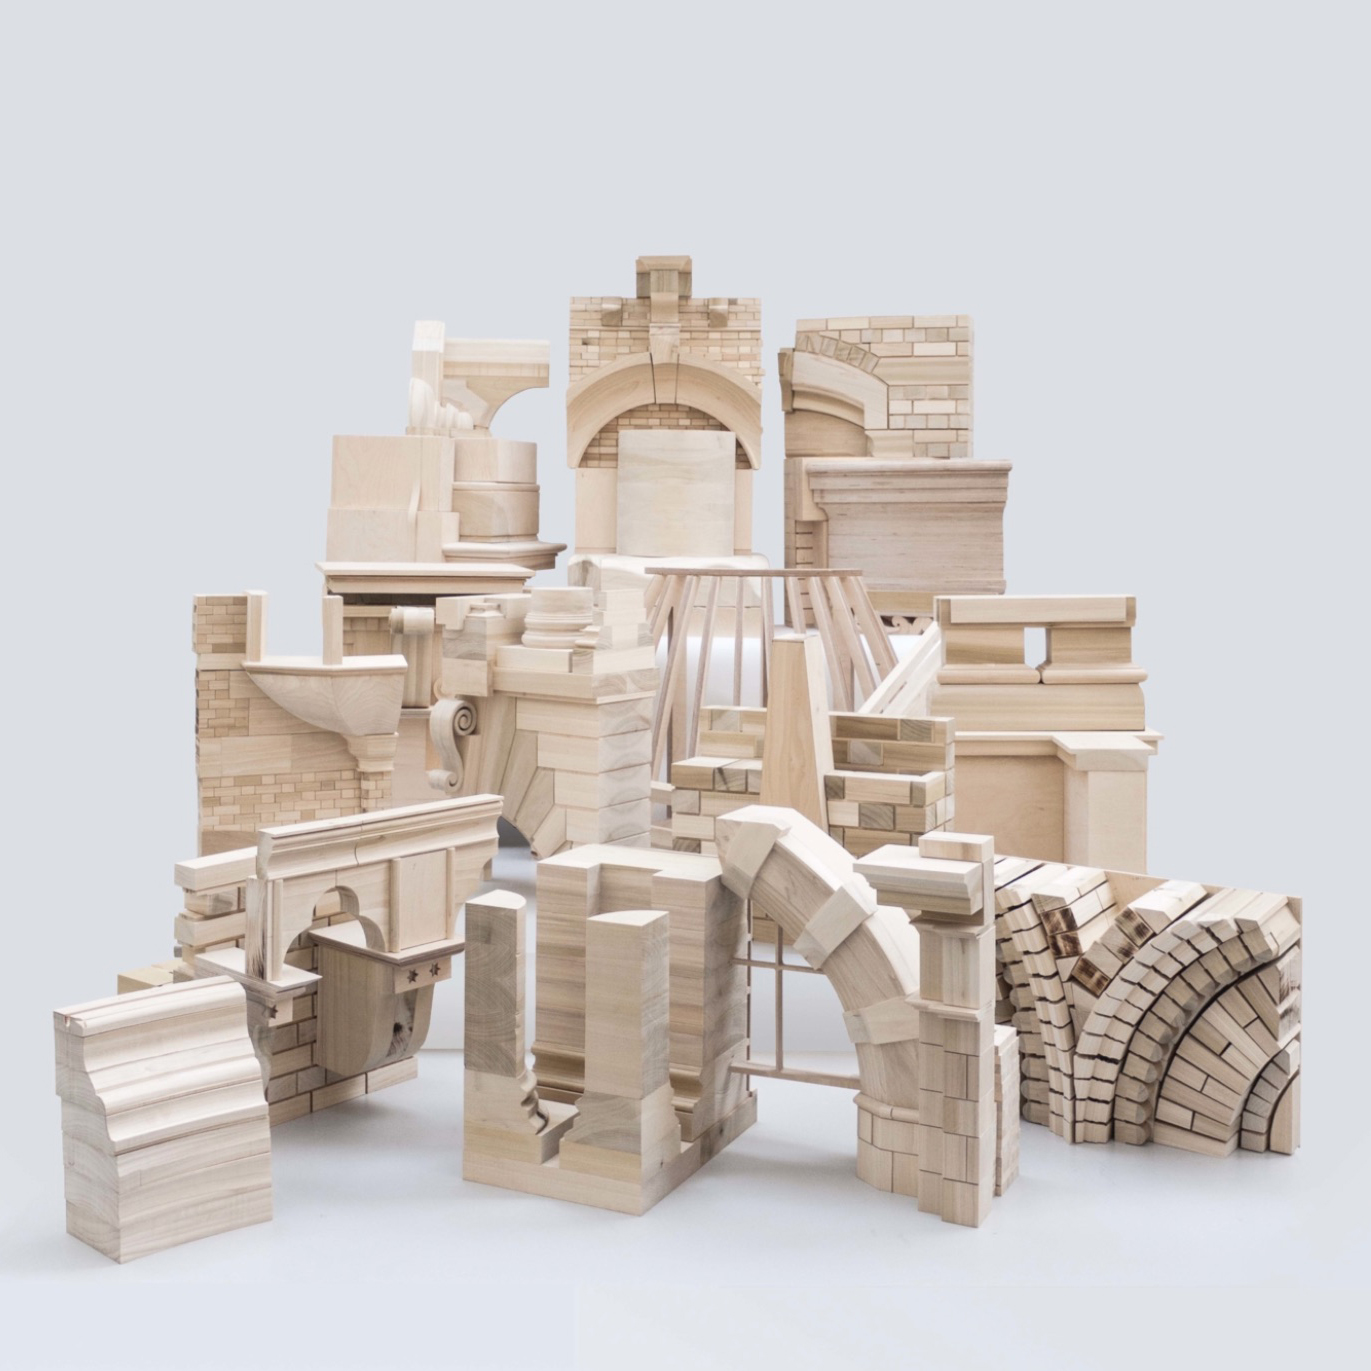 Selected Projects: Cass School of Architecture 2019   Projects by Diploma Students from the summer of 2019